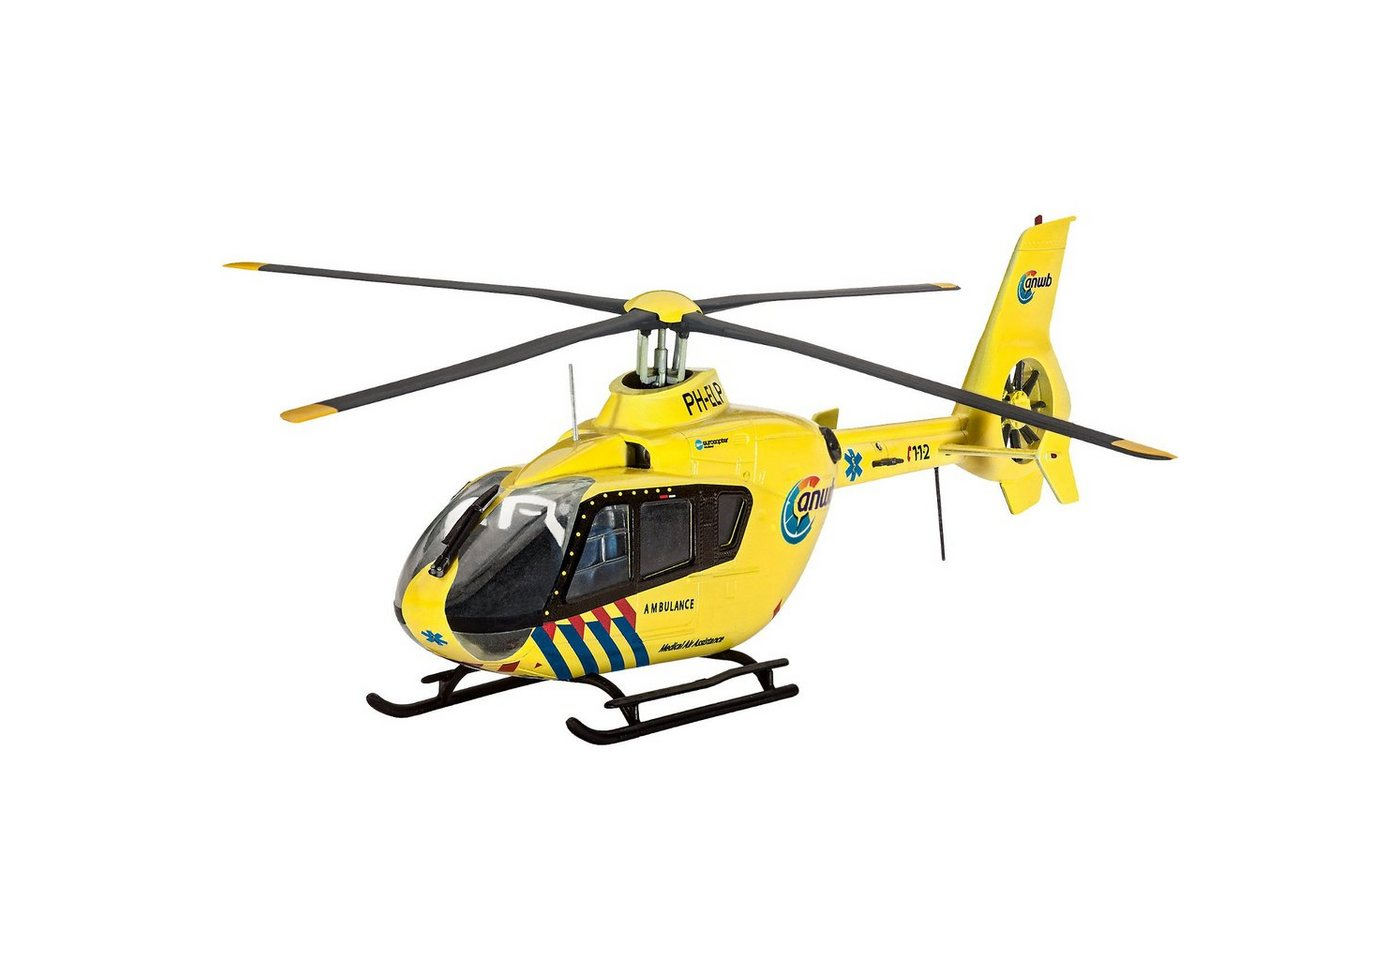 Revell® Modellbausatz - Airbus Helicopters EC135 ANWB